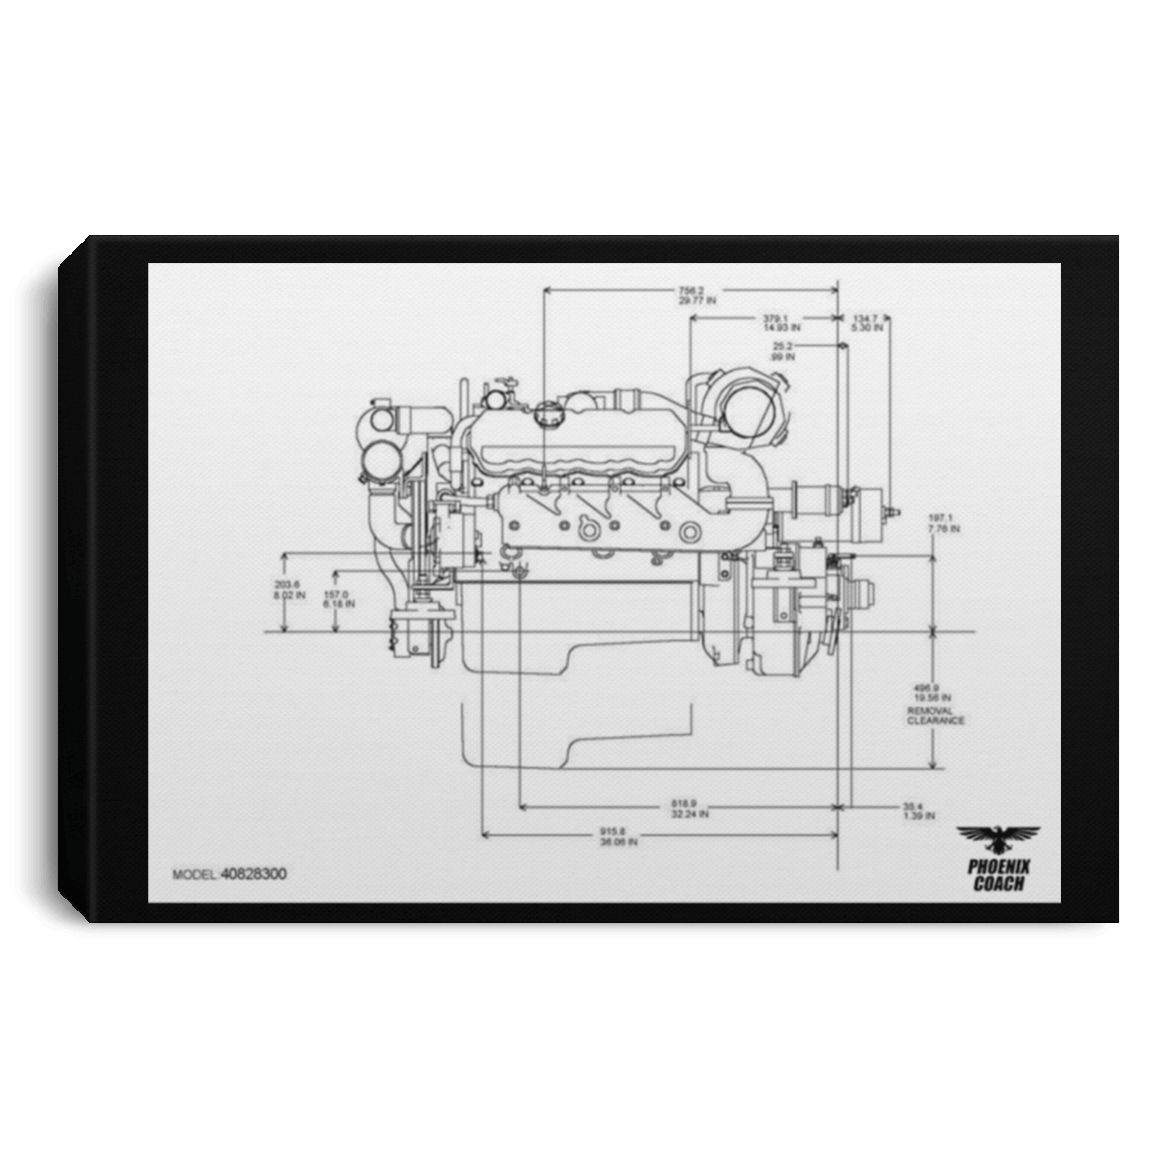 Detroit Diesel 8v92 Diagram Canla75 Landscape Canvas  75in